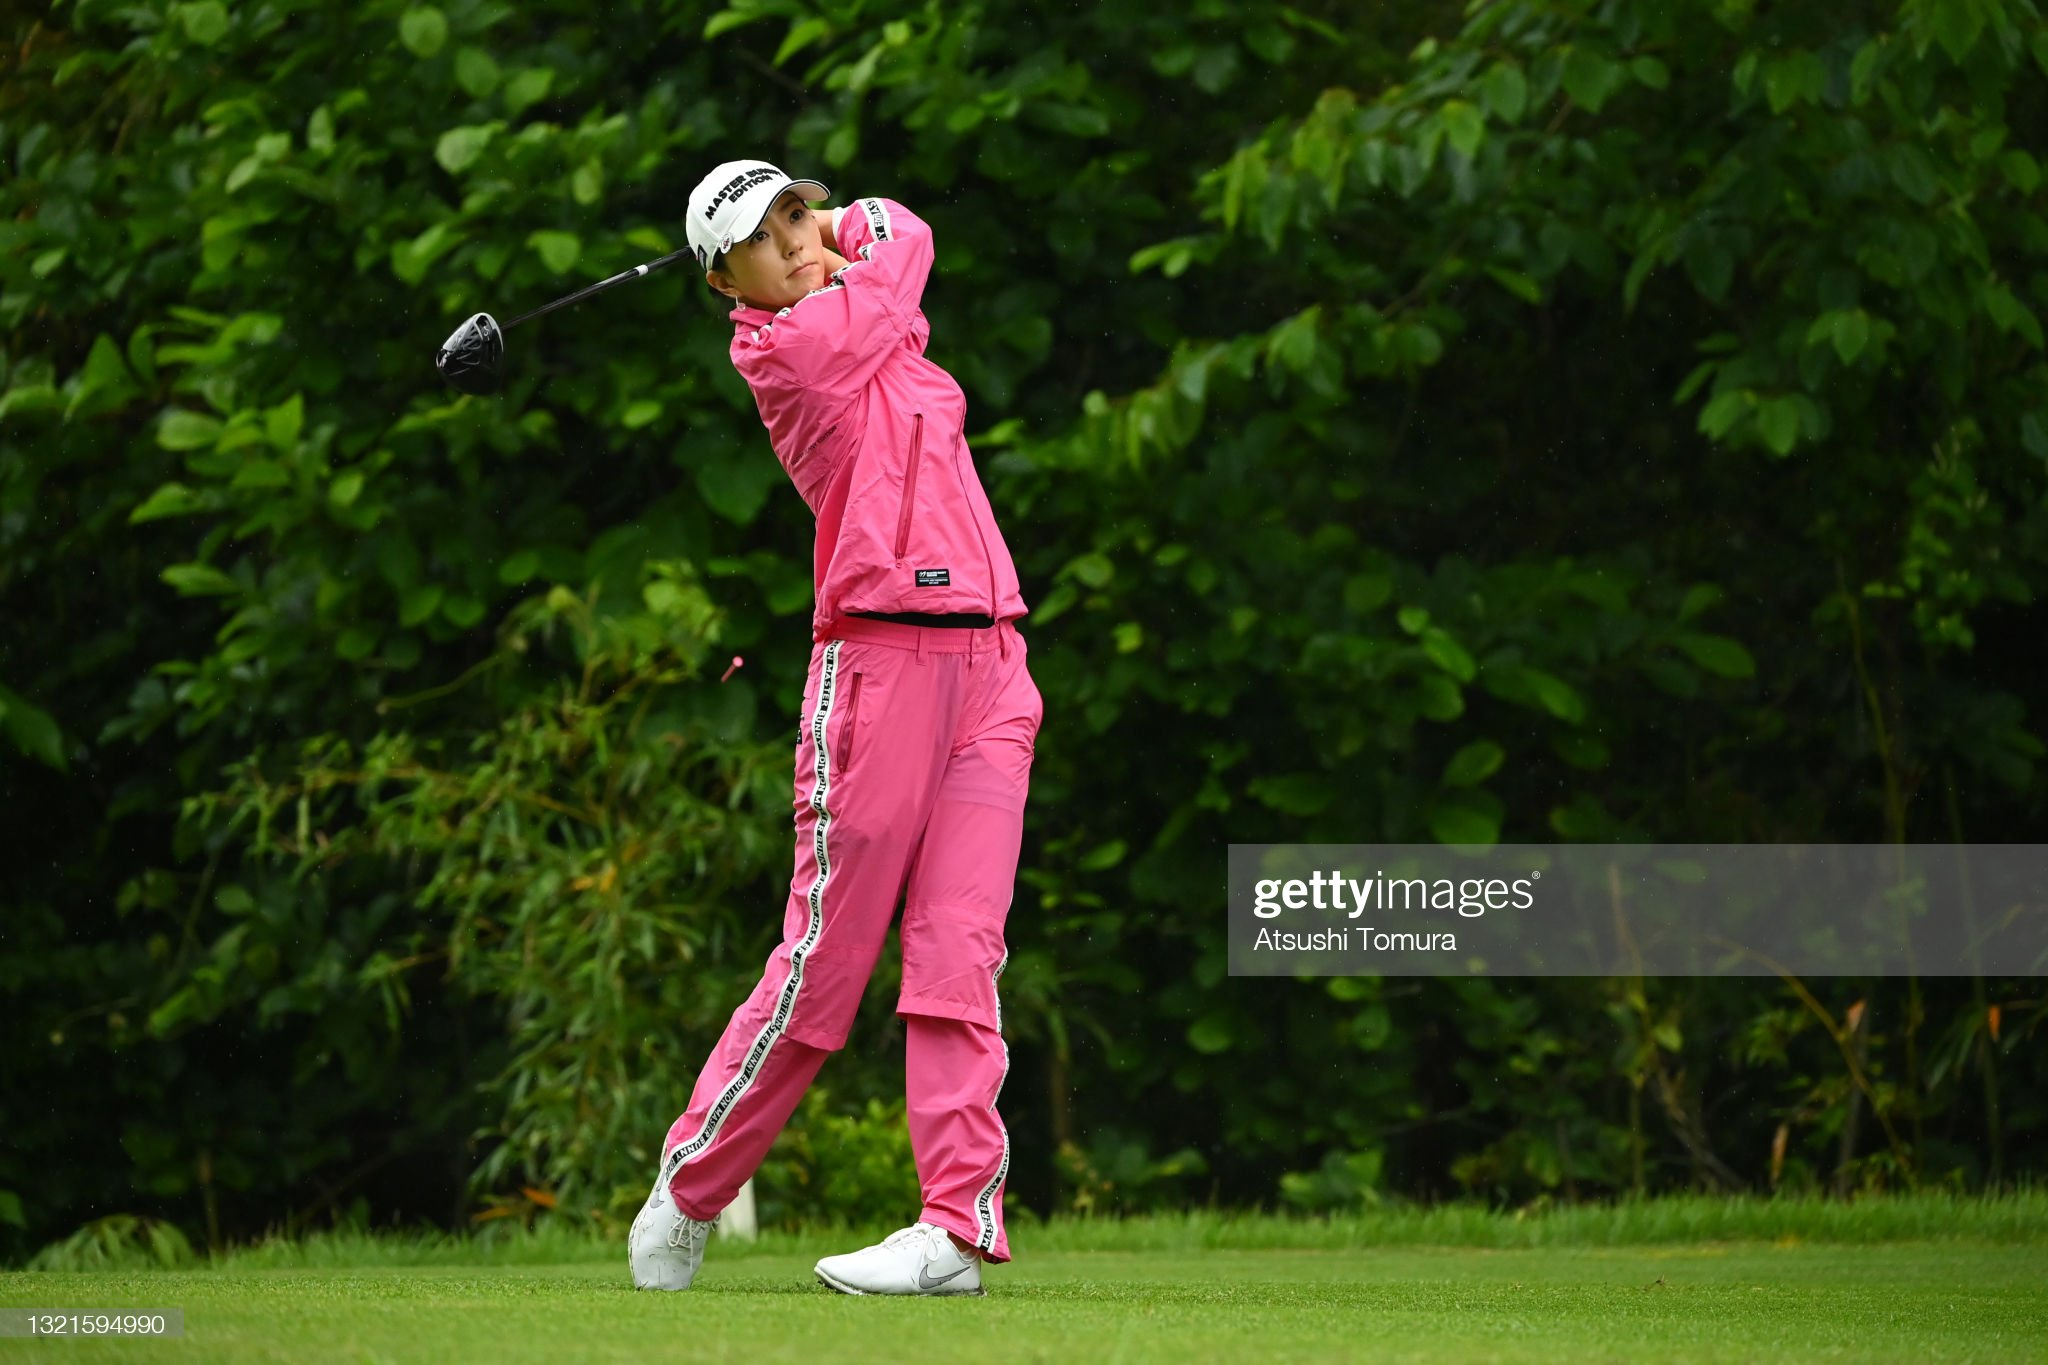 https://media.gettyimages.com/photos/chaeyoung-yoon-of-south-korea-hits-her-tee-shot-on-the-2nd-hole-the-picture-id1321594990?s=2048x2048